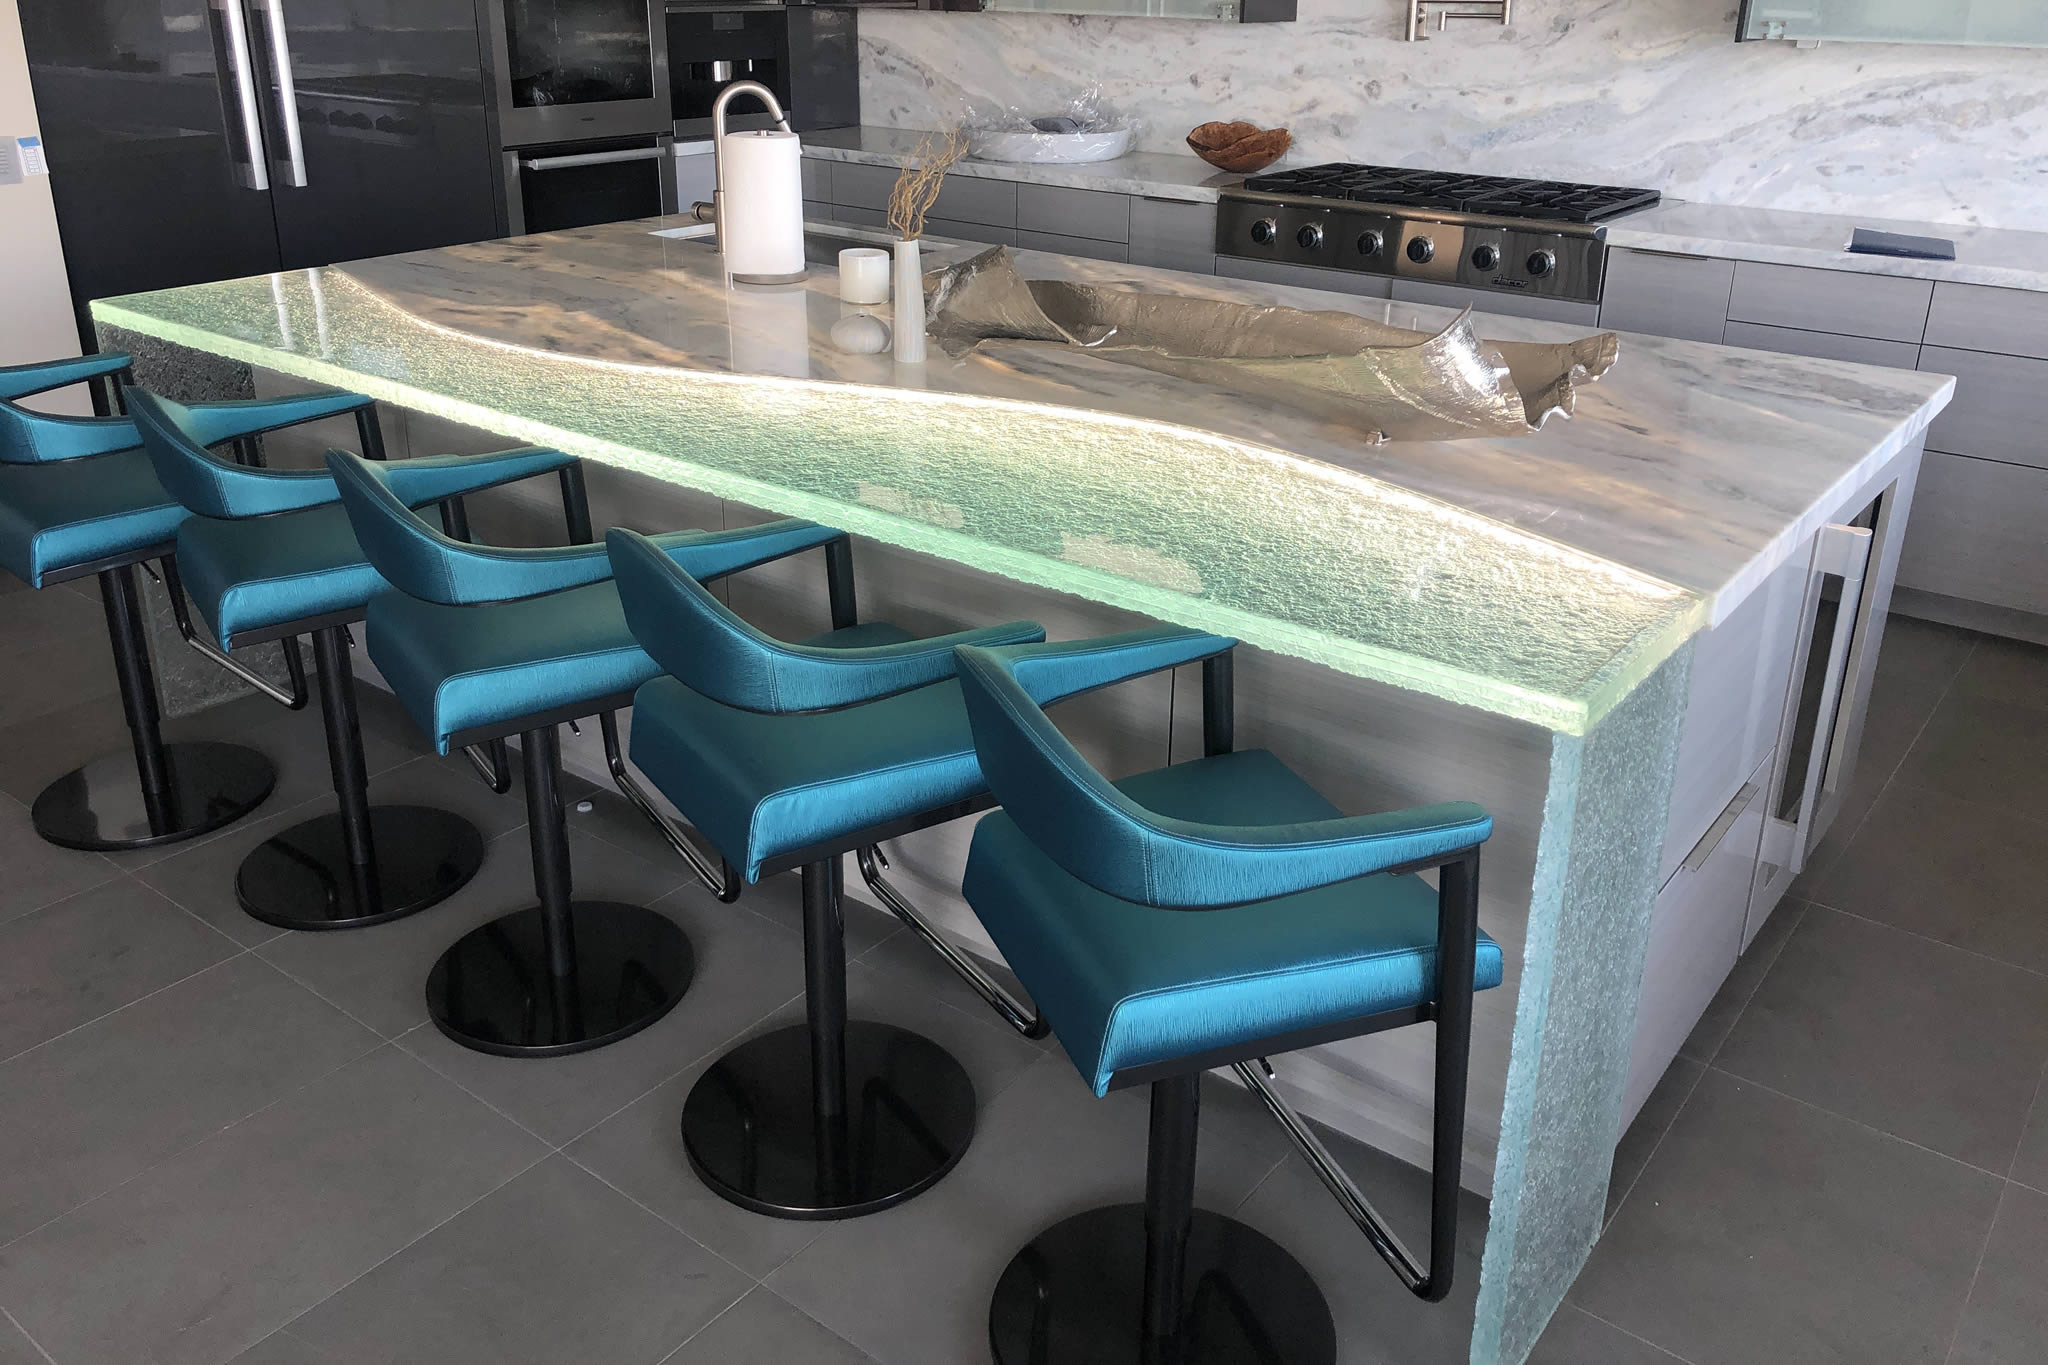 Solid Glass Counter Surfaces in a Dazzling Array of Shapes, Colors, Textures, and Patterns